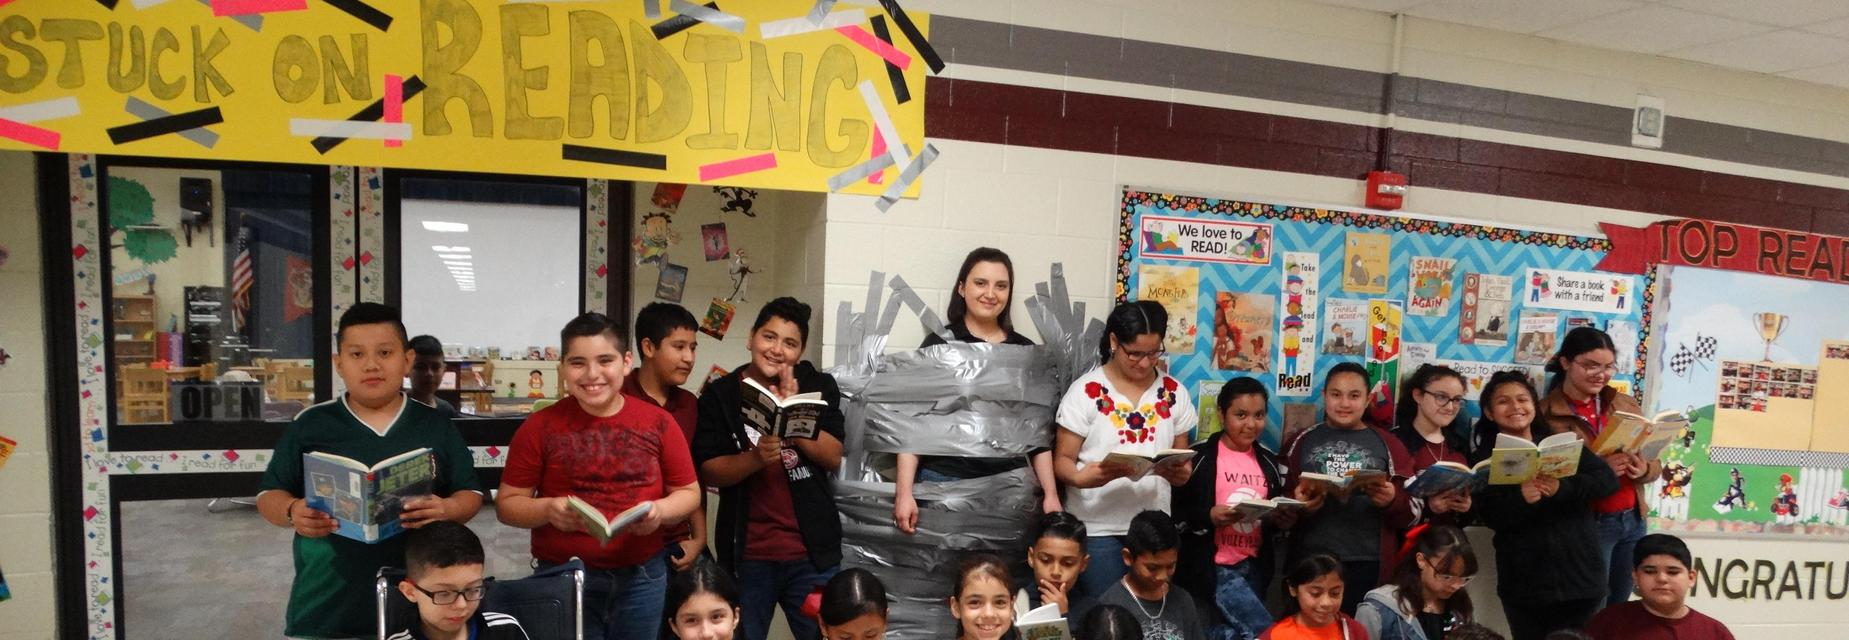 5th grade teacher taped to the wall